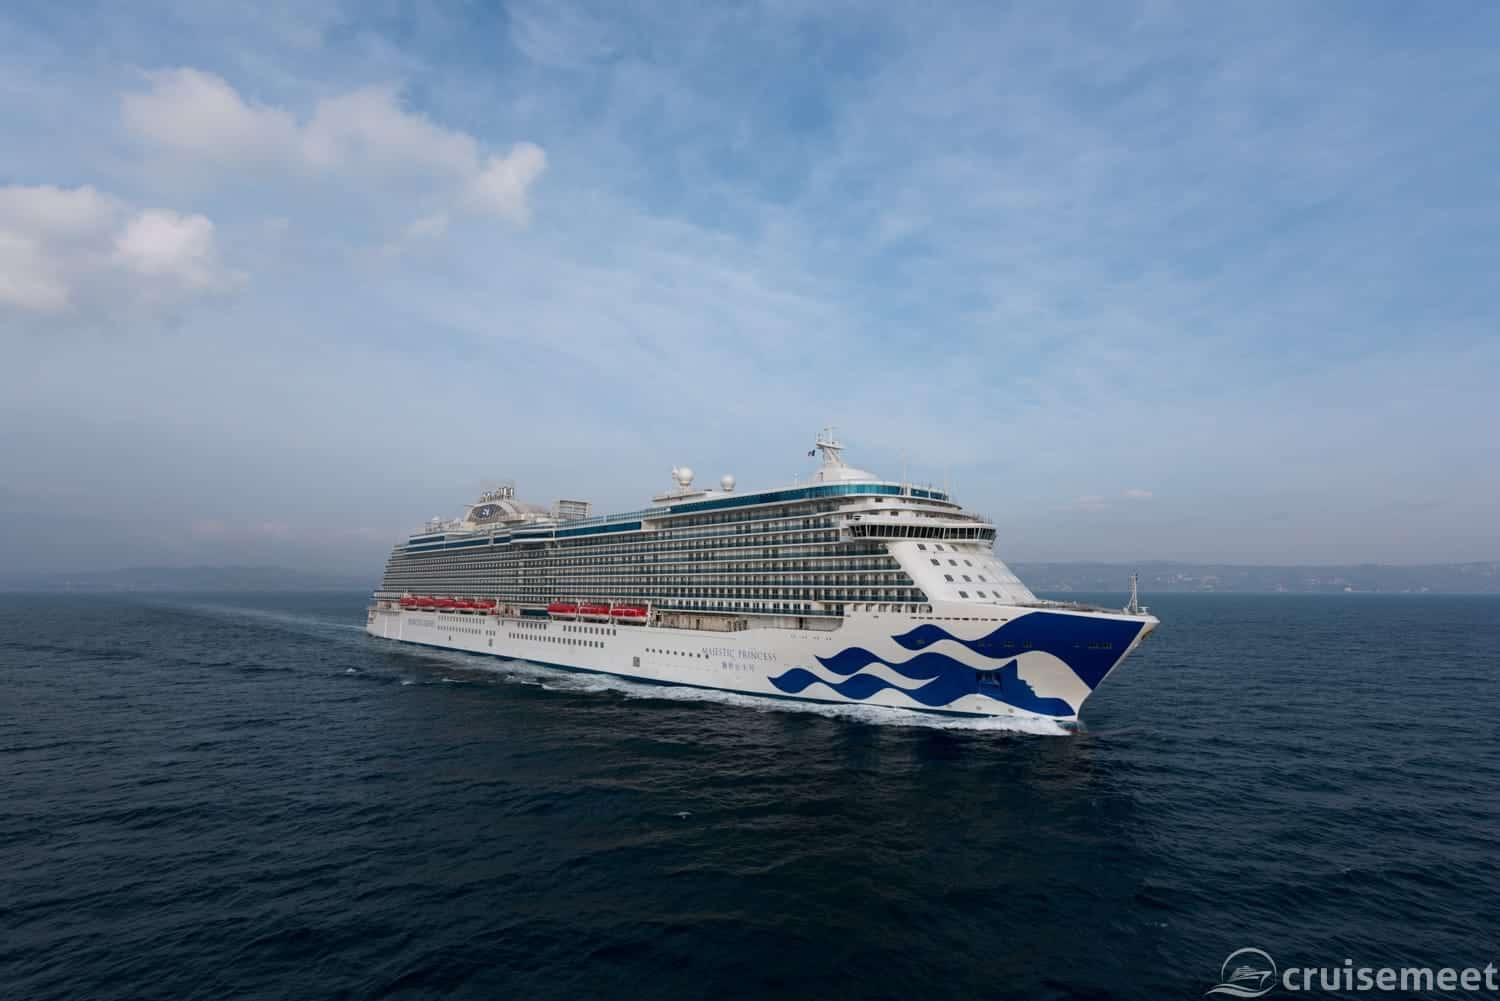 Majestic Princess at sea